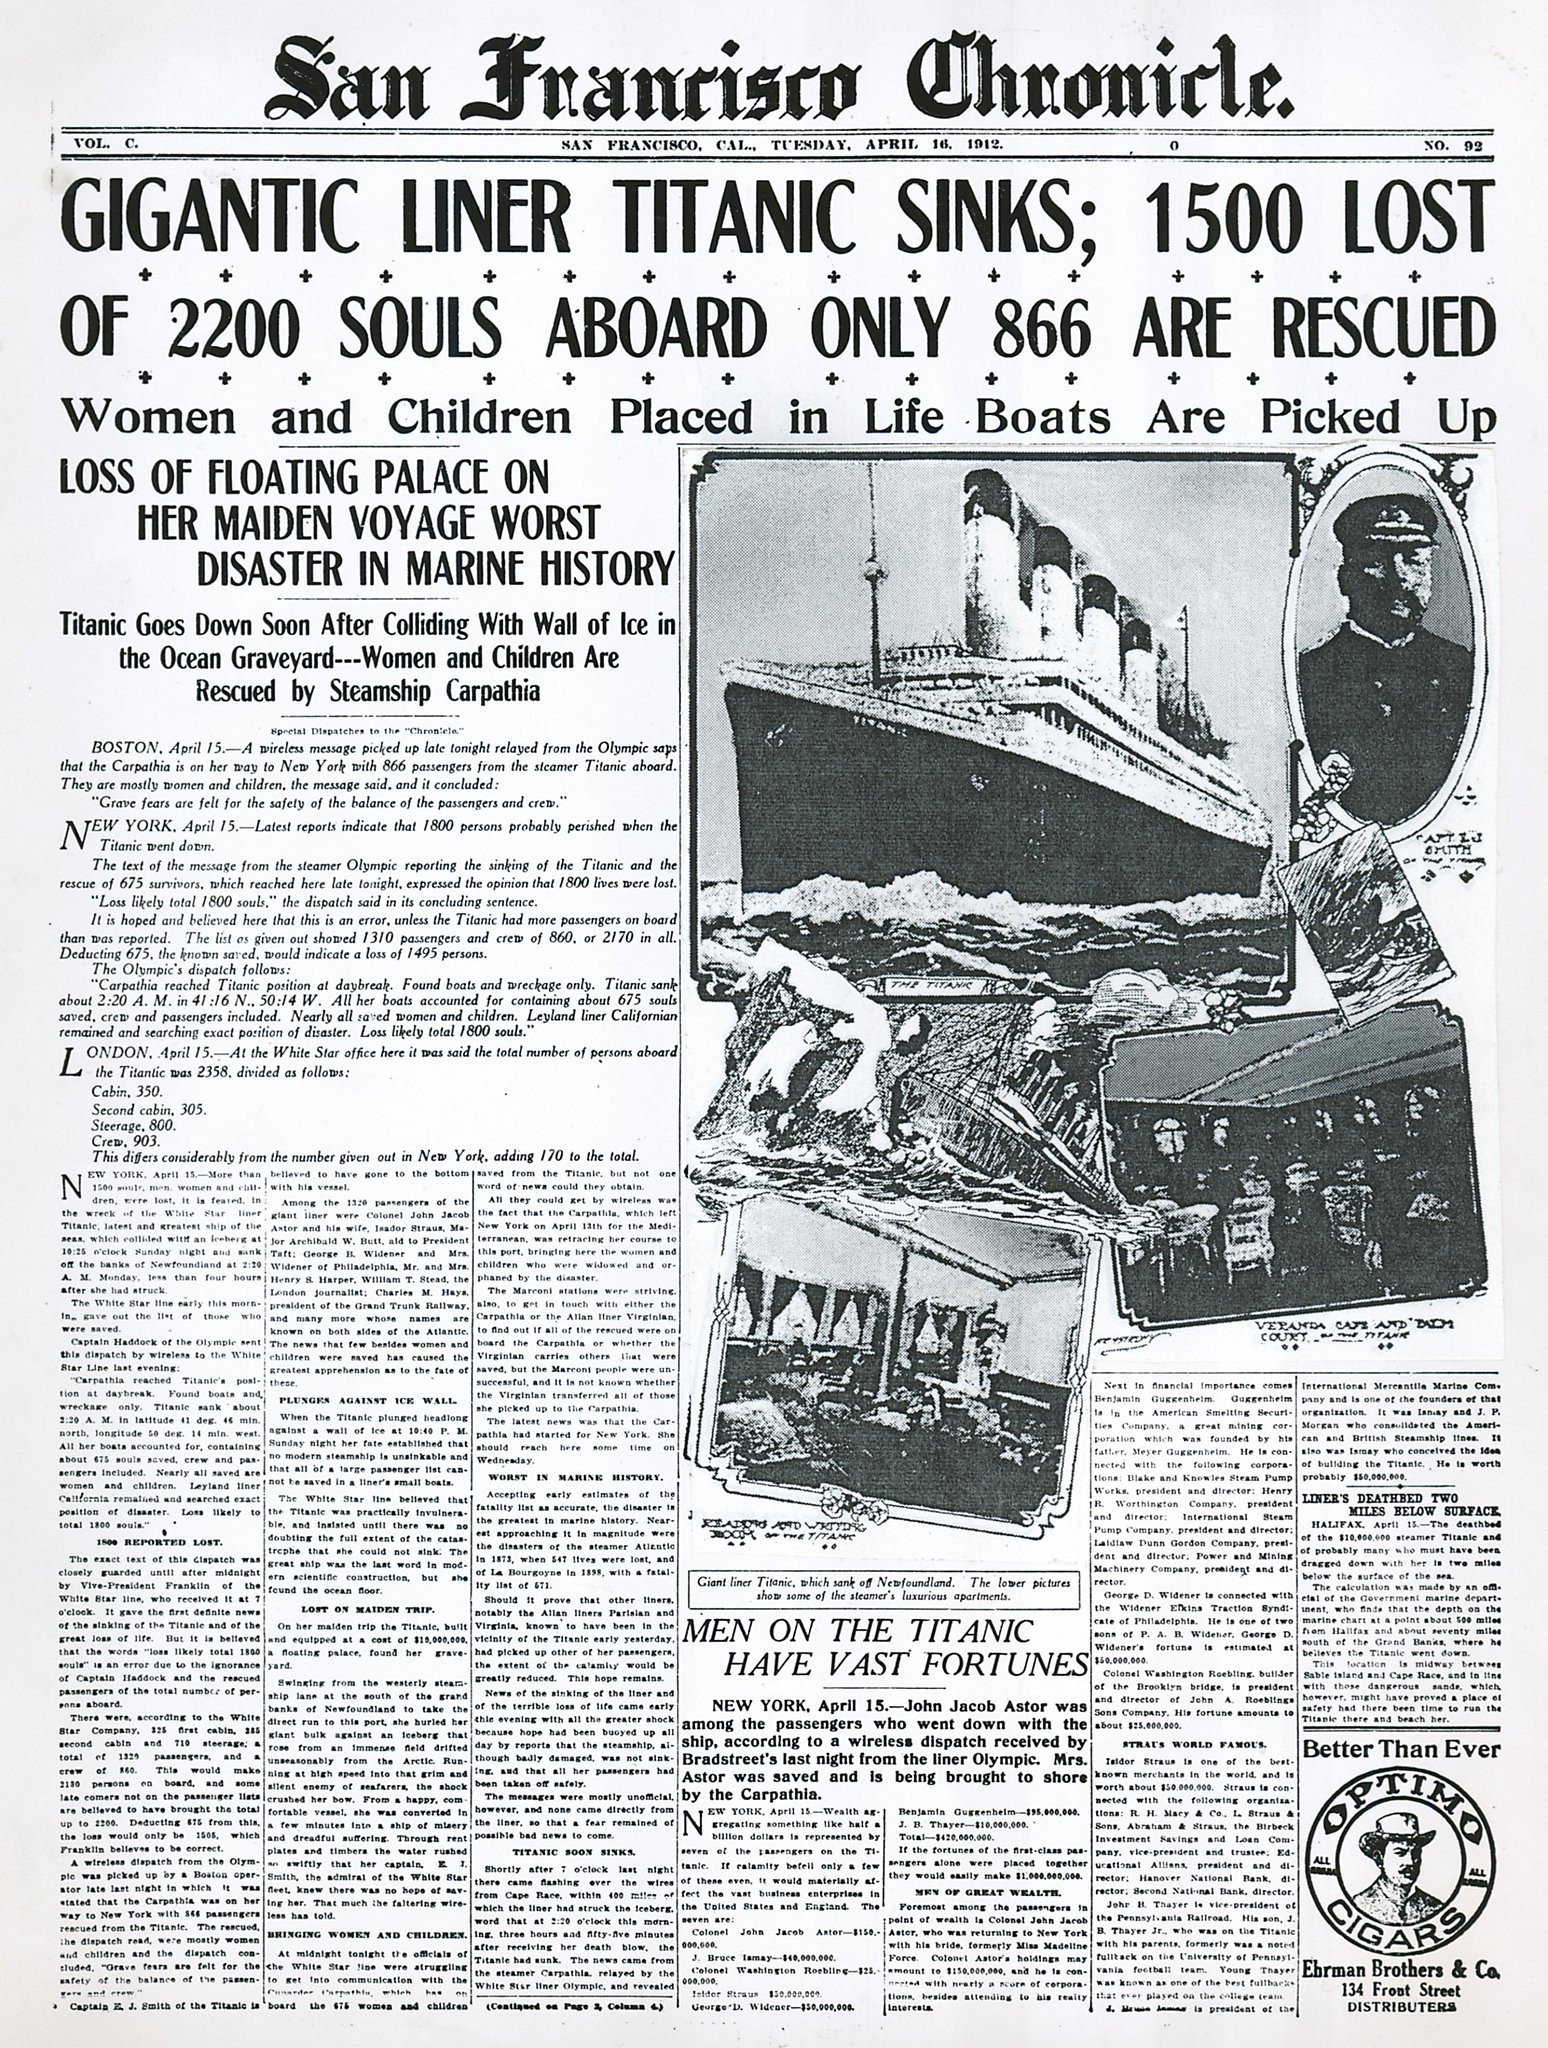 chronicle covers  the titanic u2019s sinking  104 years later